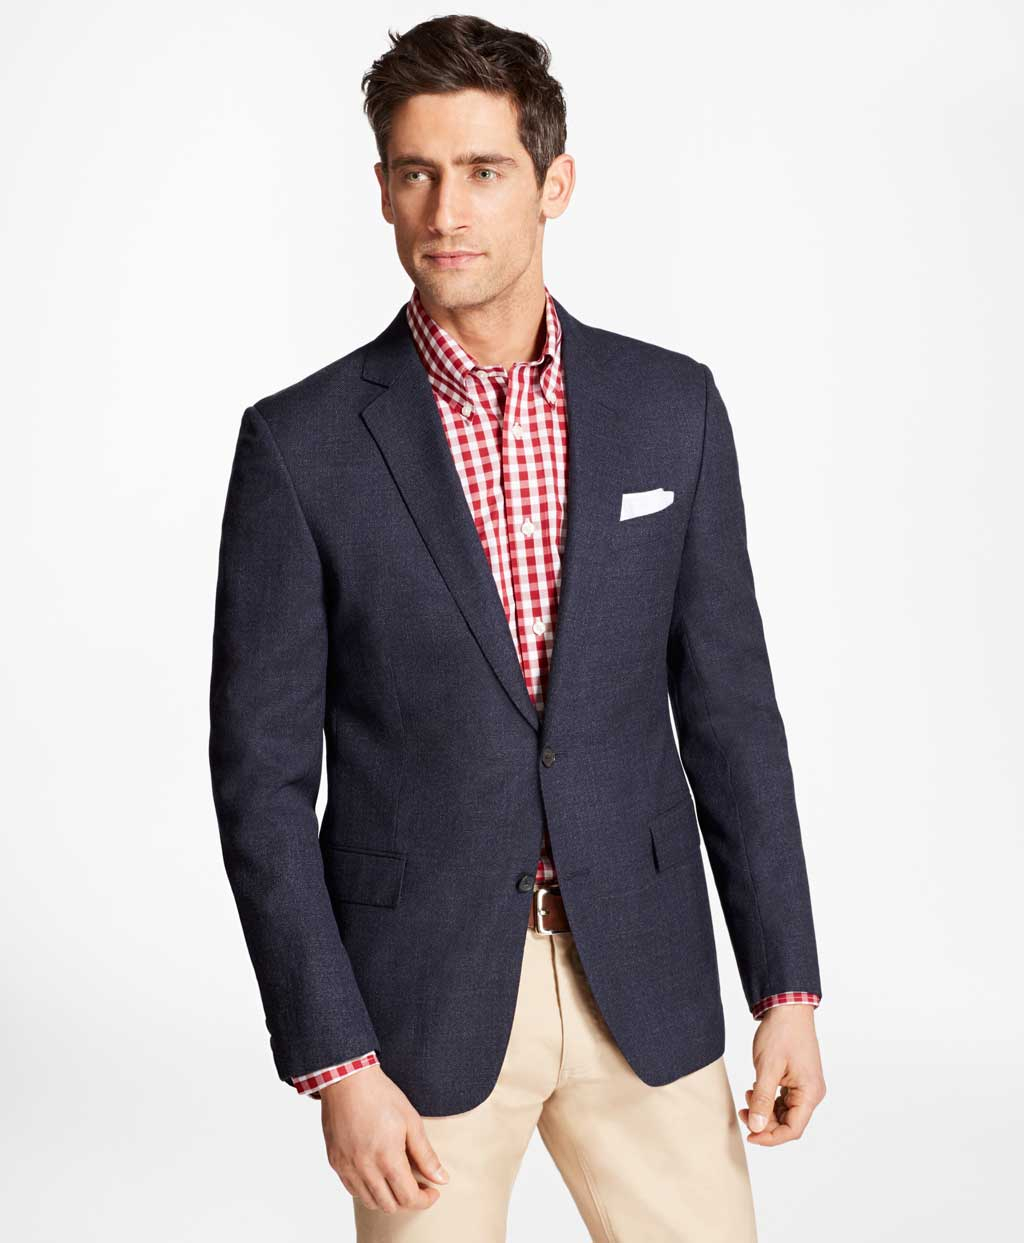 b6c0b0e2d6a Three different outfit inspiration options using a navy blue Brooks  Brothers hopsack sport coat blazer…